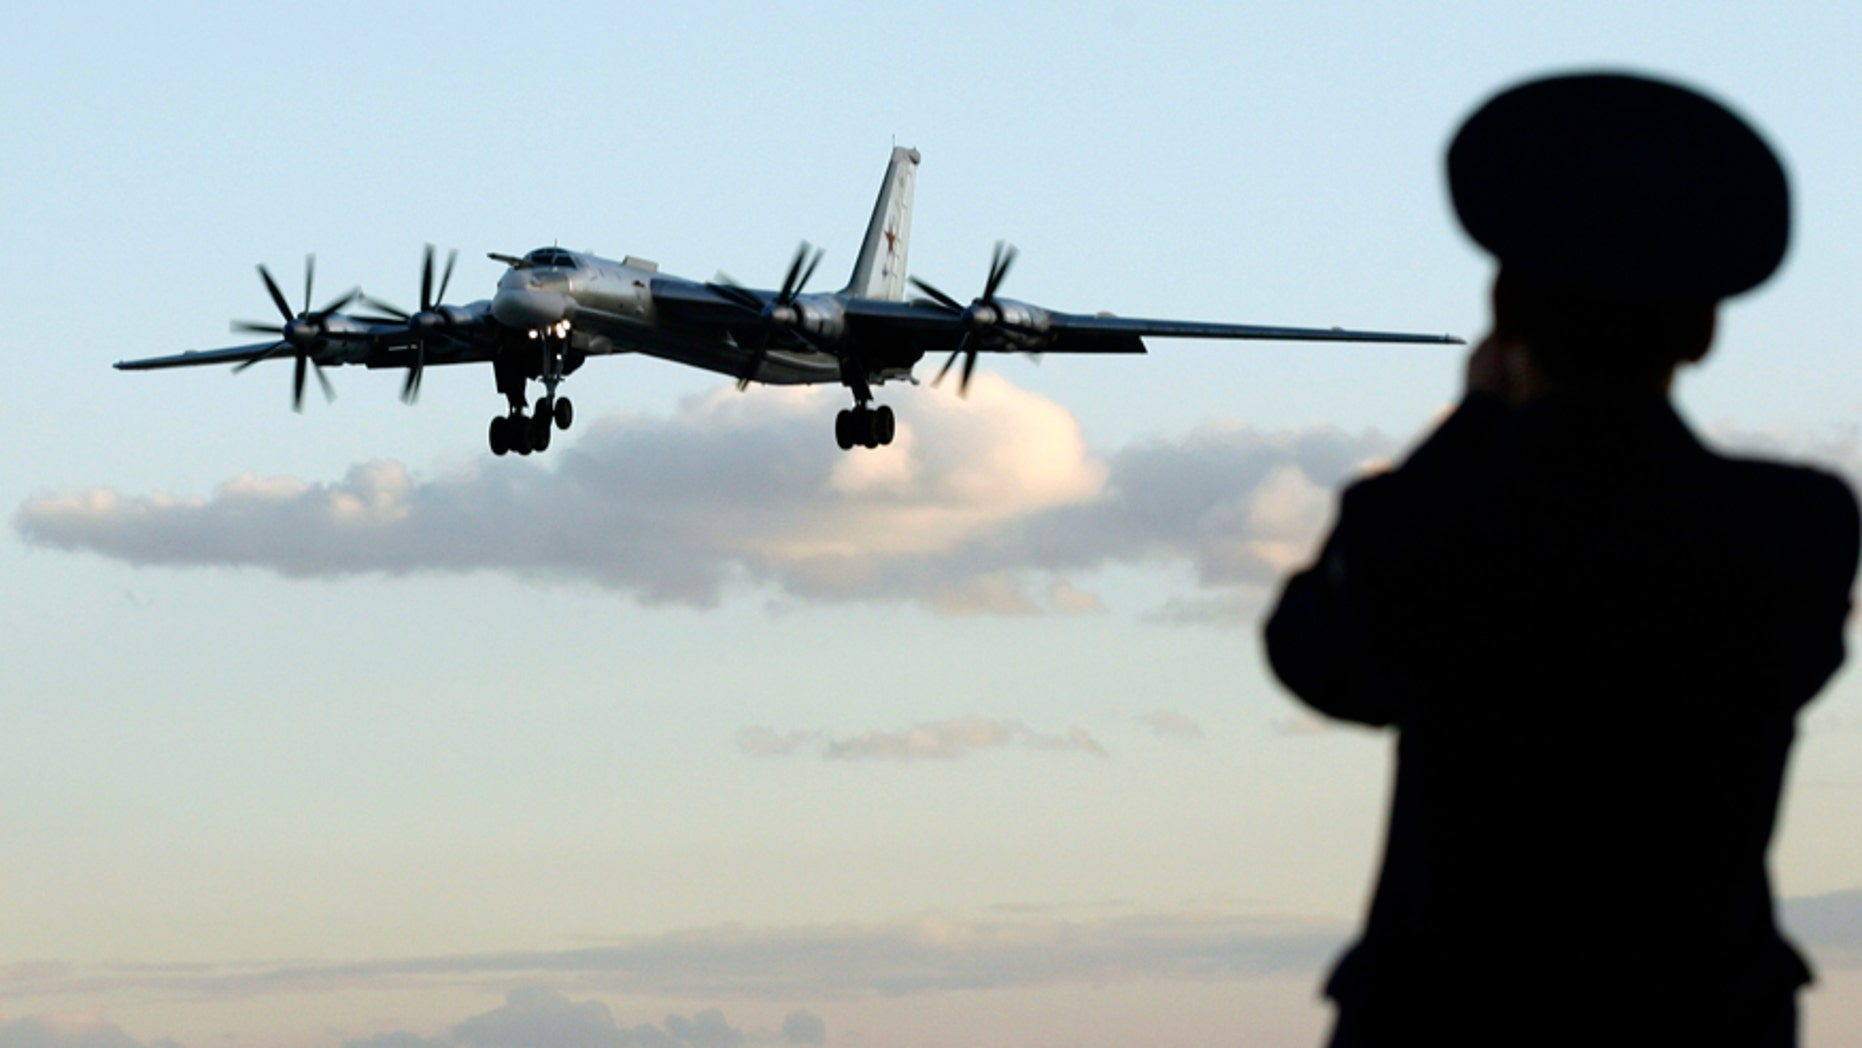 """A Russian officer takes a picture of a Tu-95 bomber, or """"Bear,"""" at a military airbase in Engels, some 900 km (559 miles) south of Moscow, August 7, 2008.  Picture taken August 7, 2008. Two Tu-160 jets, known to Russian pilots as """"White Swans"""" flew this month from this base on the Volga river to Venezuela, a mission calculated to show Russia was not afraid to flex its military muscles right under the nose of the United States.To match feature RUSSIA-BOMBERS/ REUTERS/Sergei Karpukhin  (RUSSIA) - RTX8W9J"""